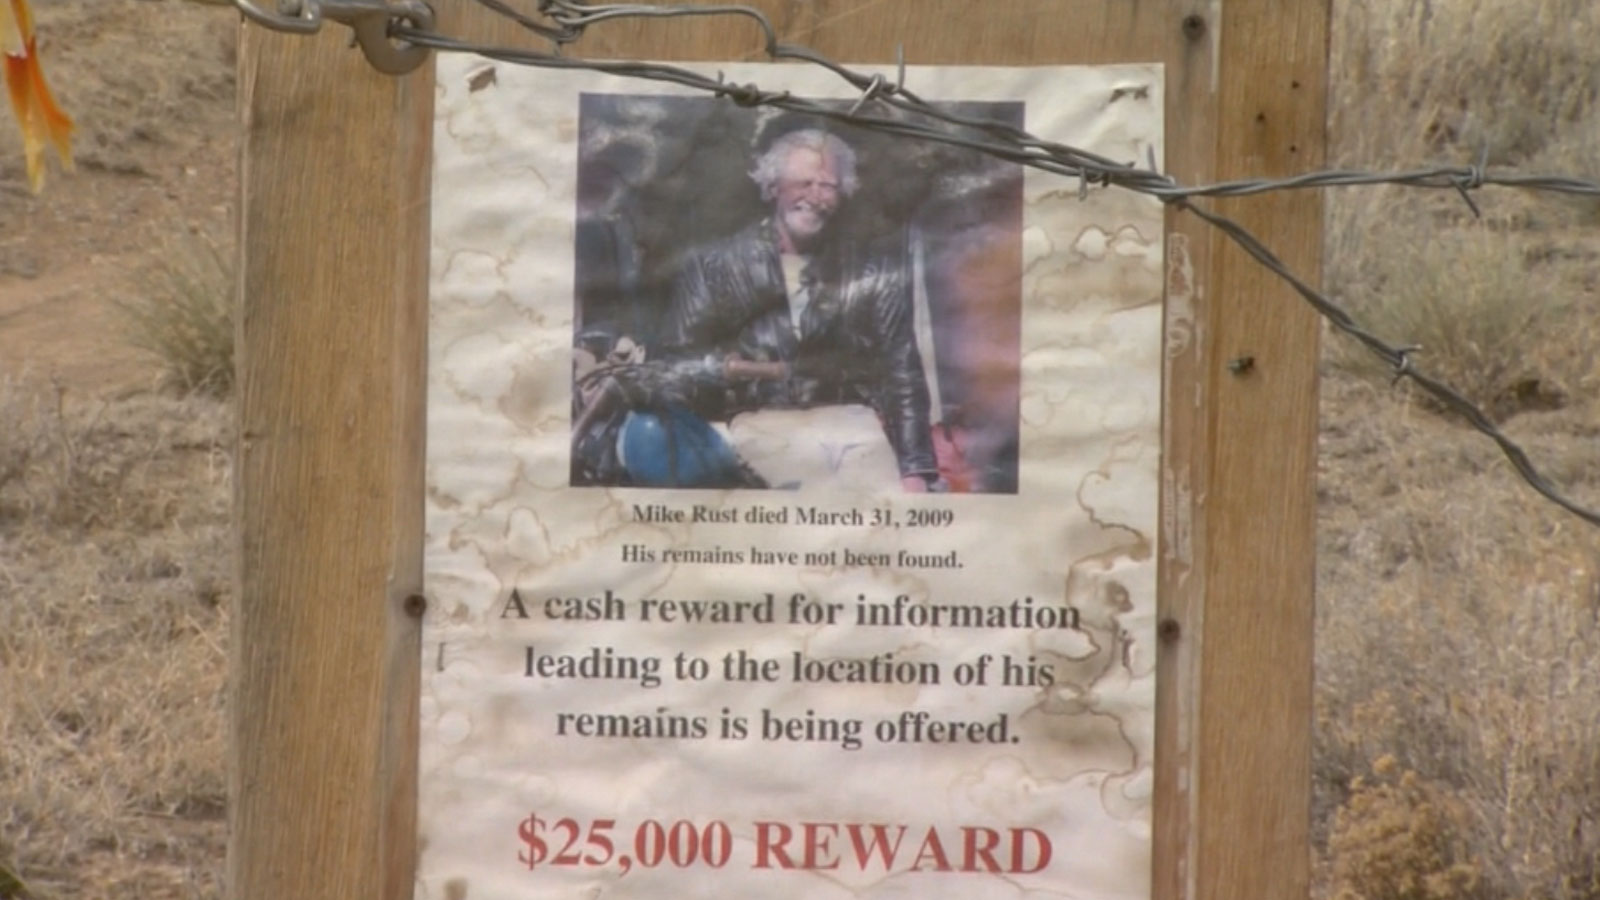 A missing poster for Mike Rust (credit: CBS)